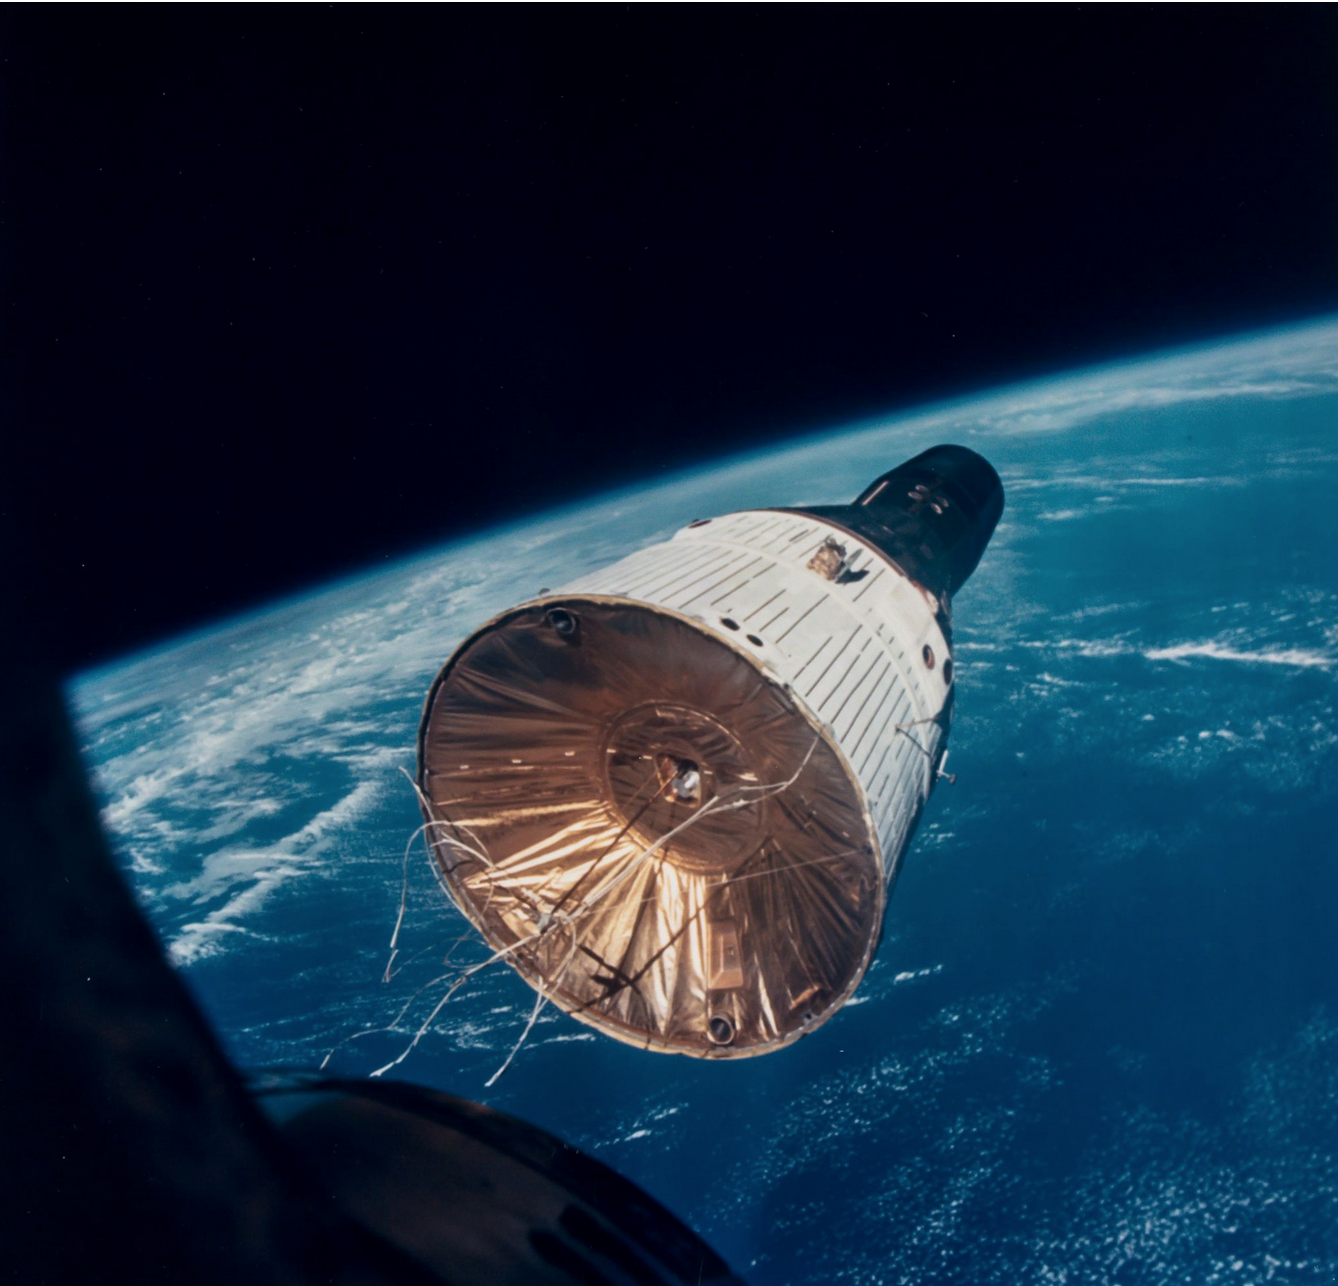 Gemini 7 as seen from Gemini 6. Note gold mylar thermal blanket over aft end of spacecraft. (Photo credit: NASA.)